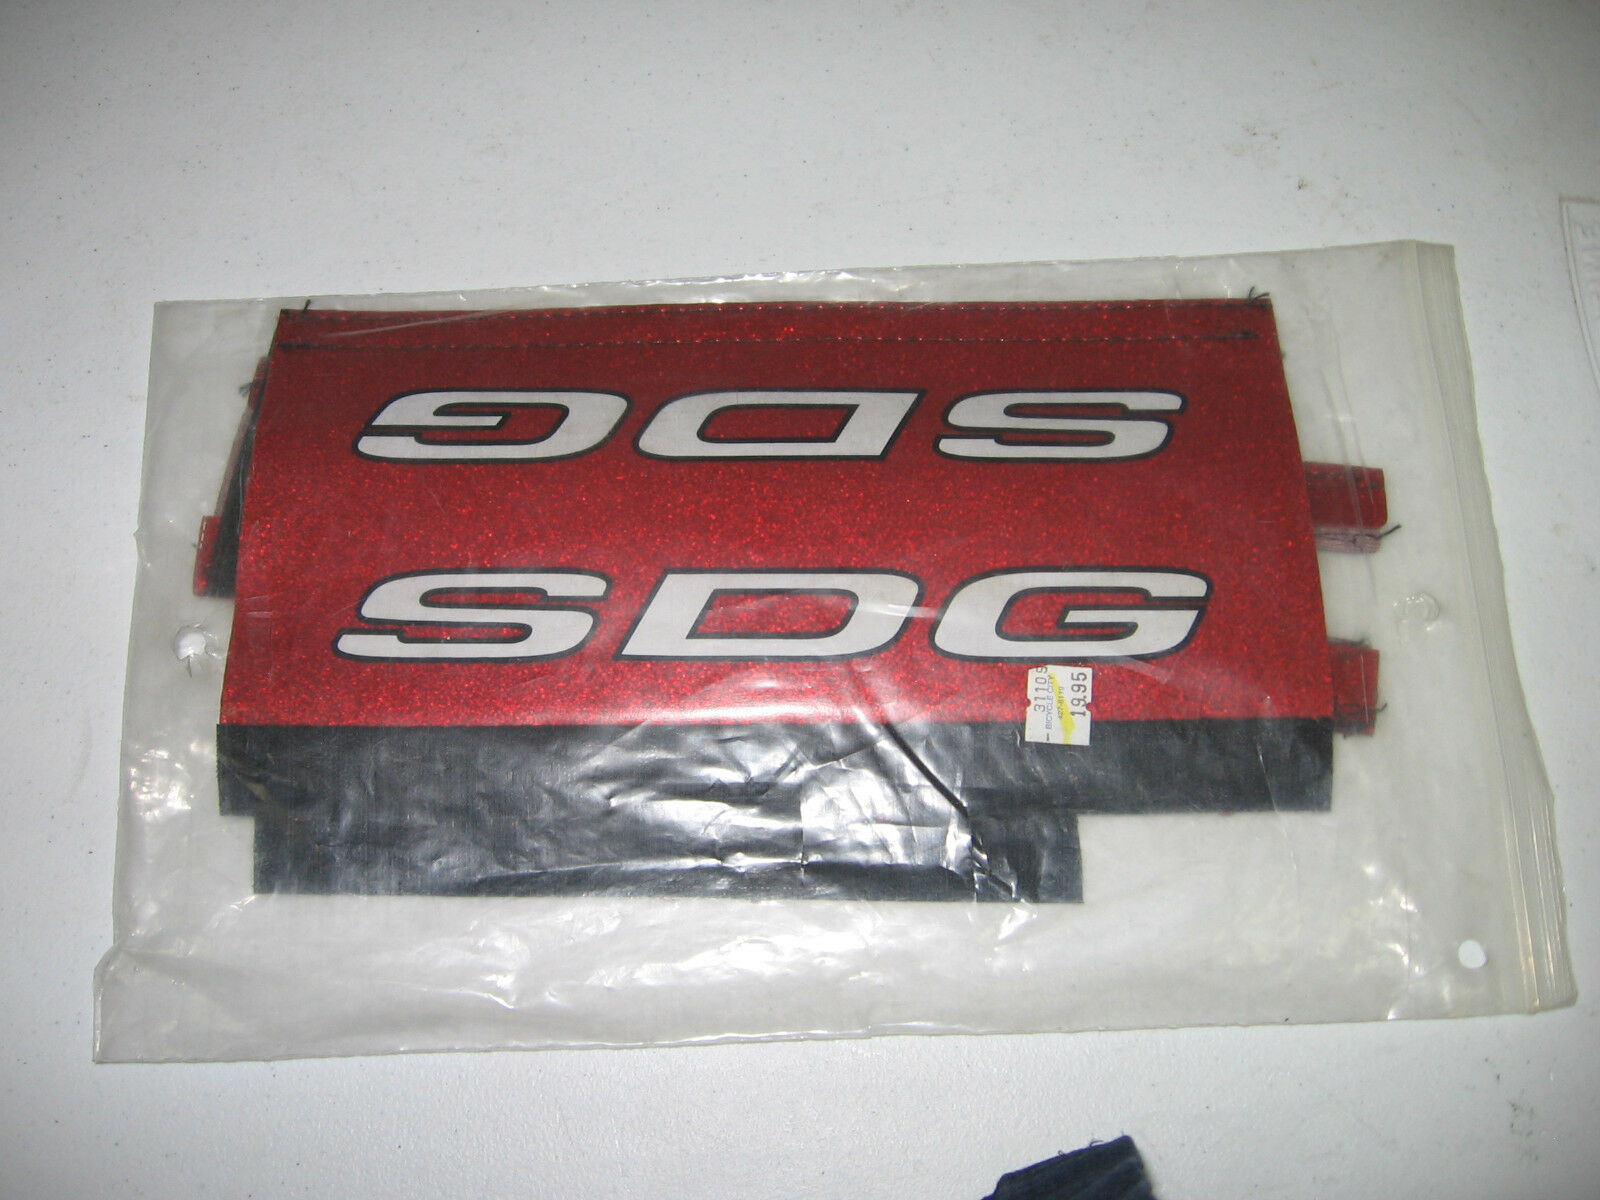 NOS red SDG pad set